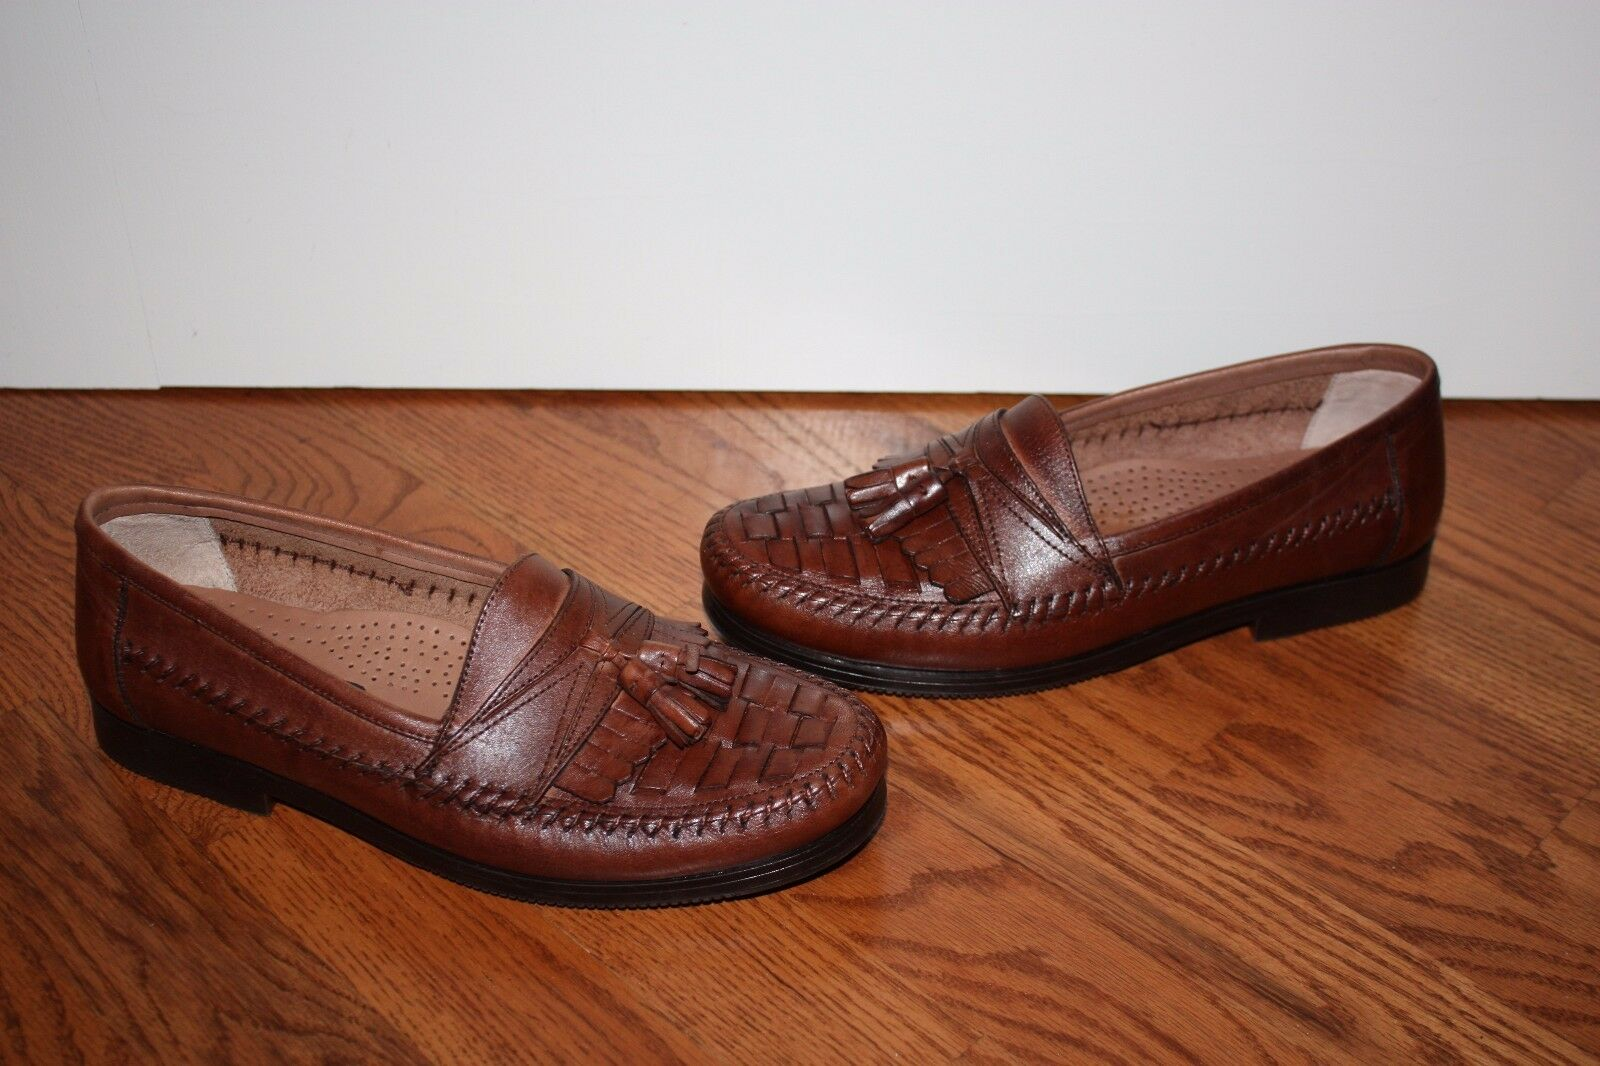 Uomo Giorgio Brutini Brown Leather Weave Tassel Loafers Shoes Size 8 D